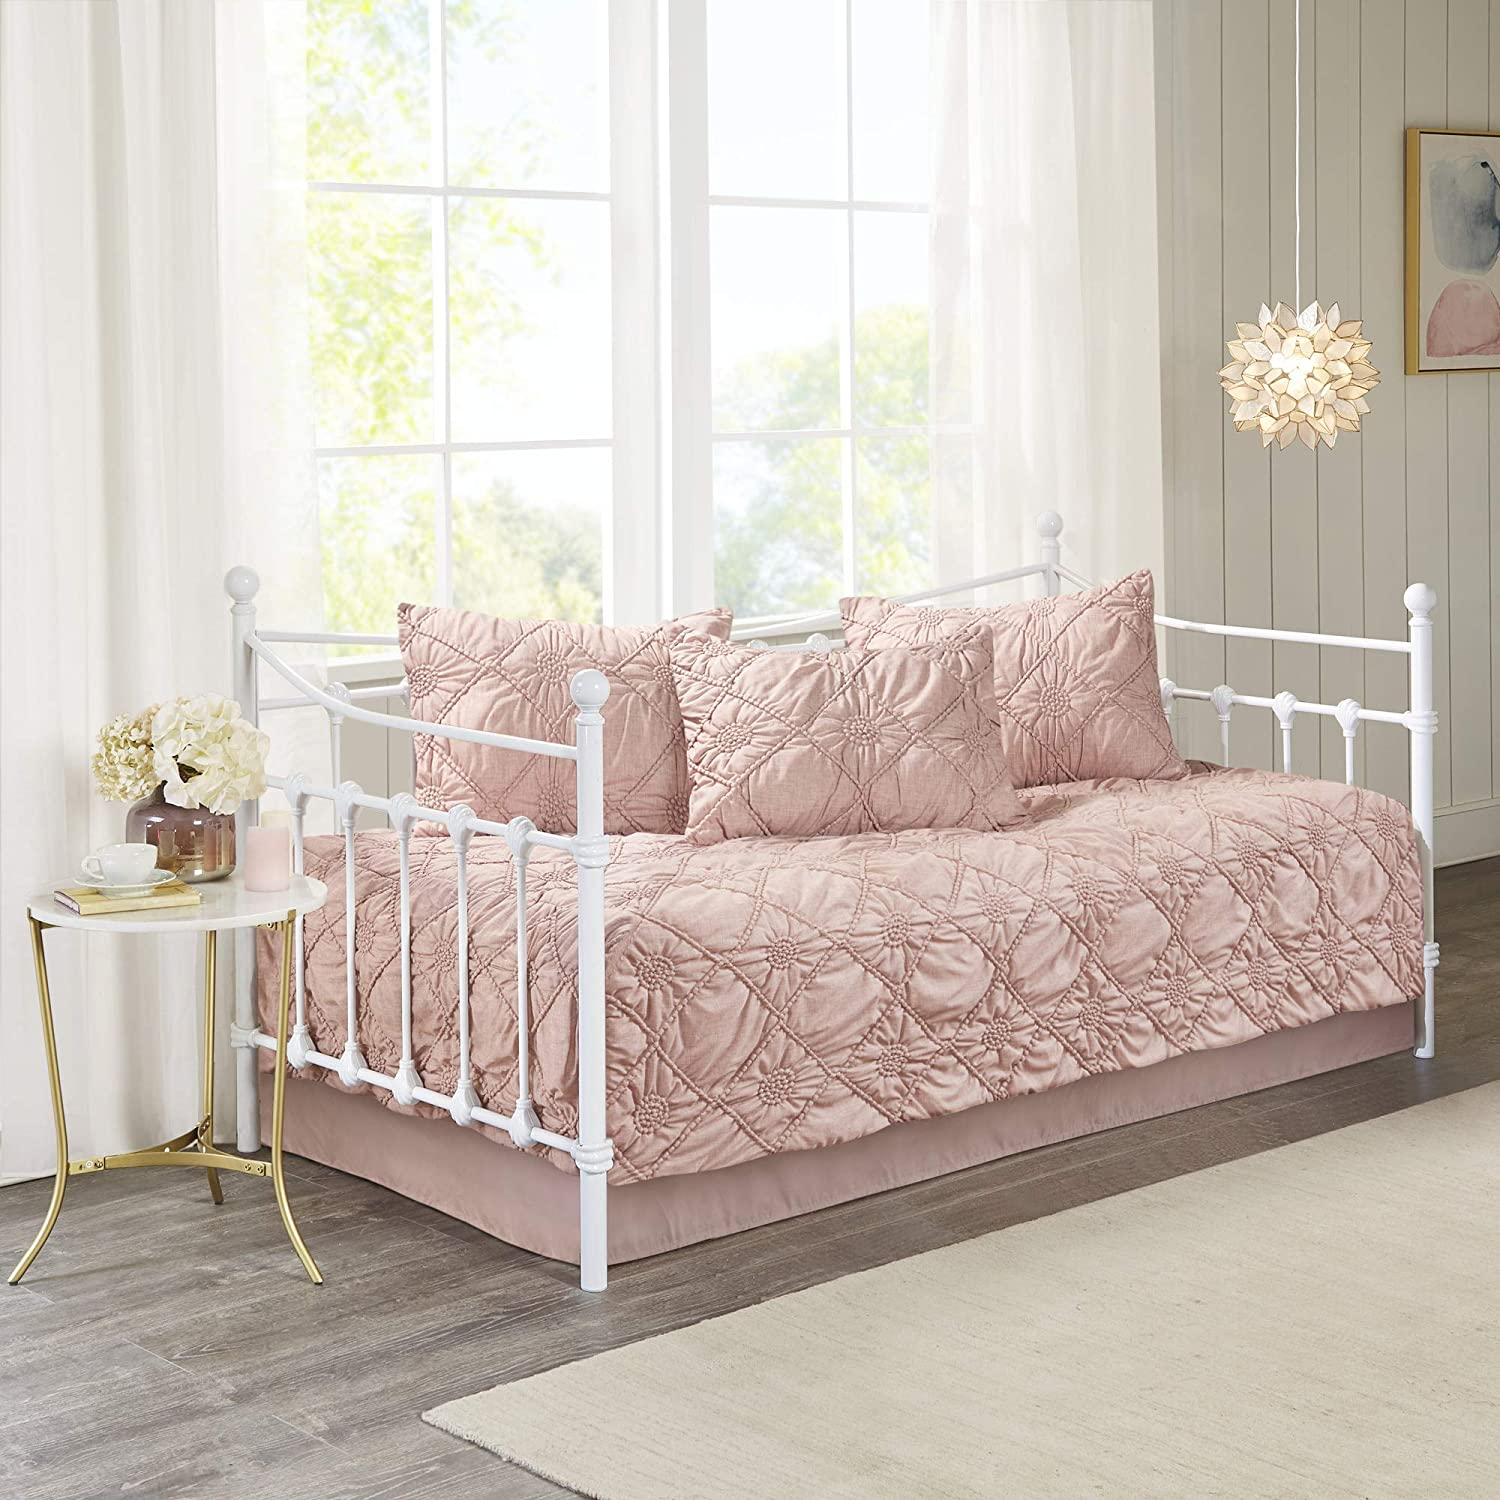 Madison Park Theresa 5 Piece Daybed Luxe Ruched Chambray Woven Cover in Rosette Diamond Design Modern Glam Shabby Chic All Season Bedding Set Dusty Rose Matching Sham and Bedskirt